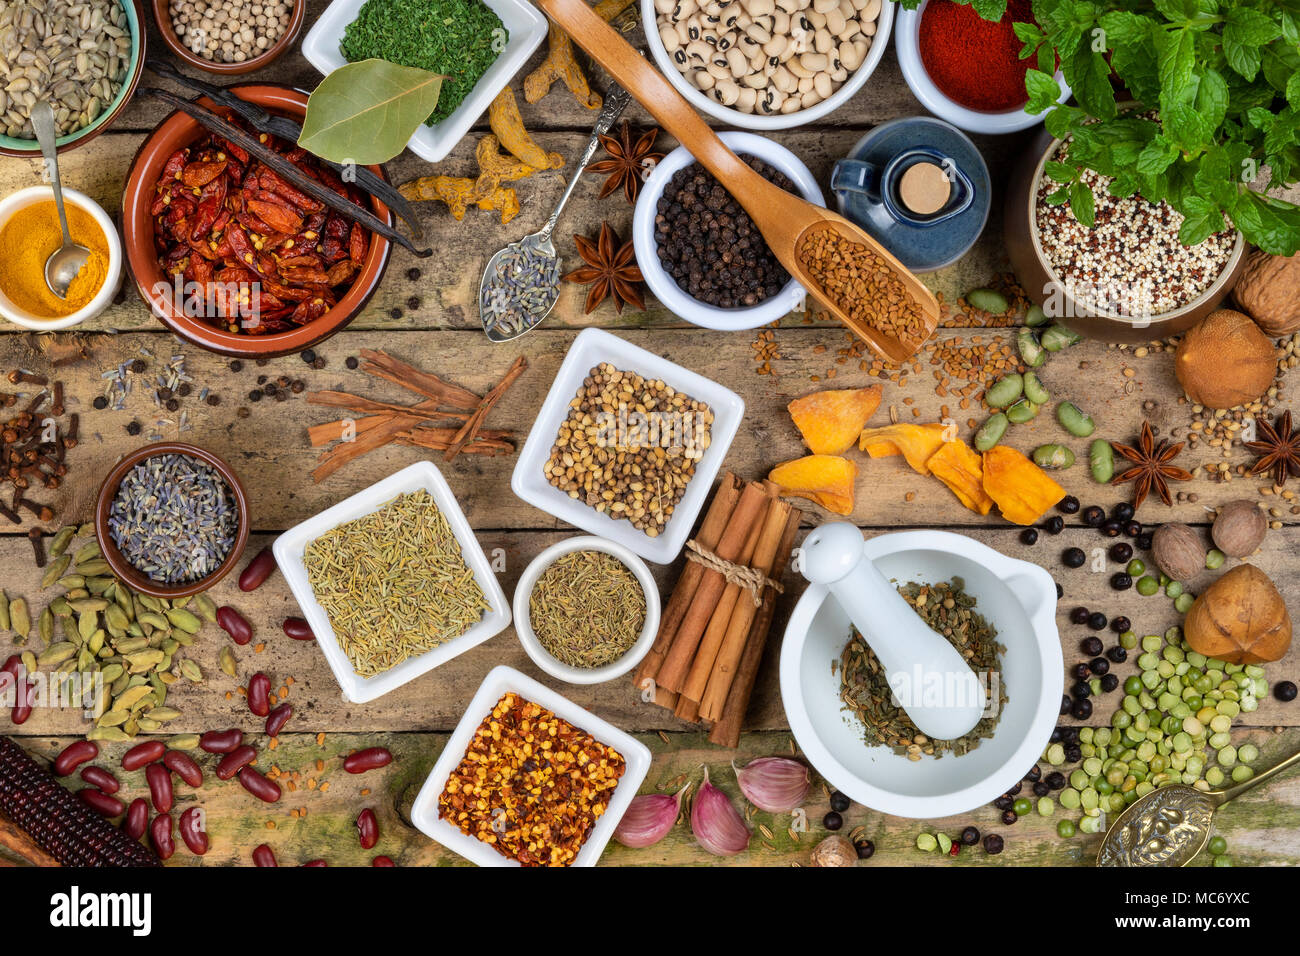 Selection of Herbs and Spices used in cooking to add flavor and seasoning. - Stock Image